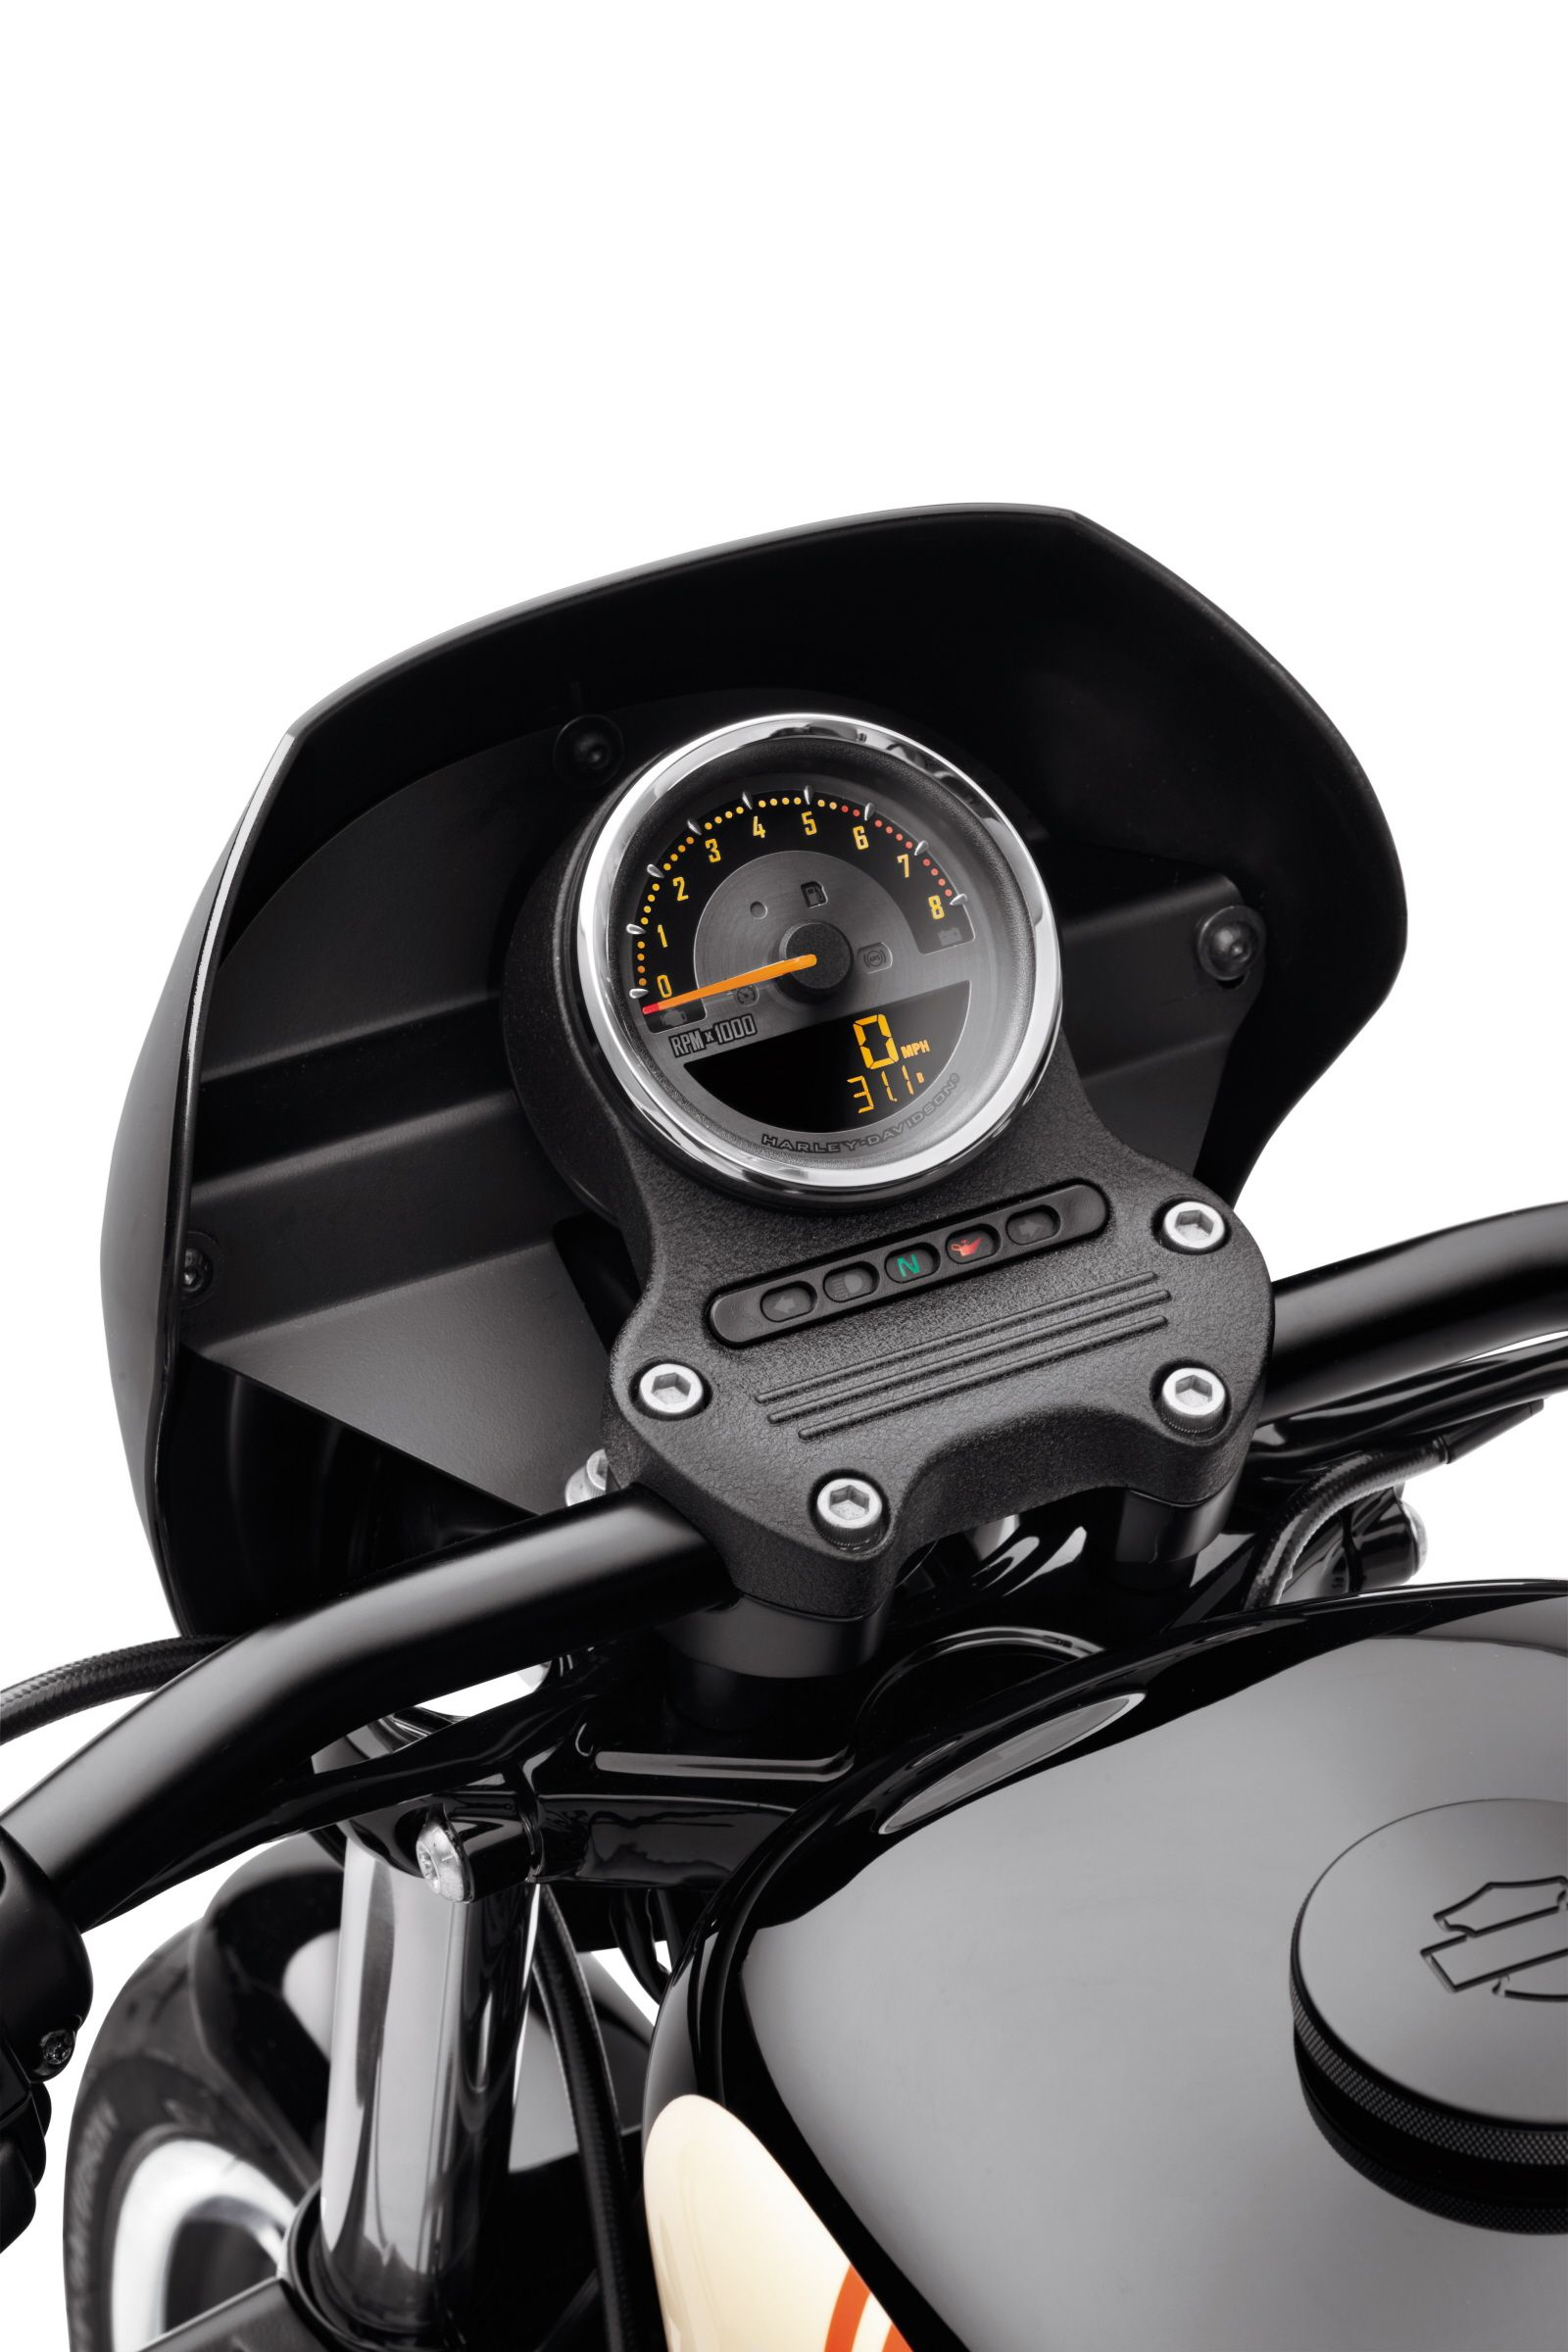 fuel level and gear position without adding additional handlebar mounted gauges harley davidson combination digital speedometer analog tachometer [ 1600 x 2400 Pixel ]